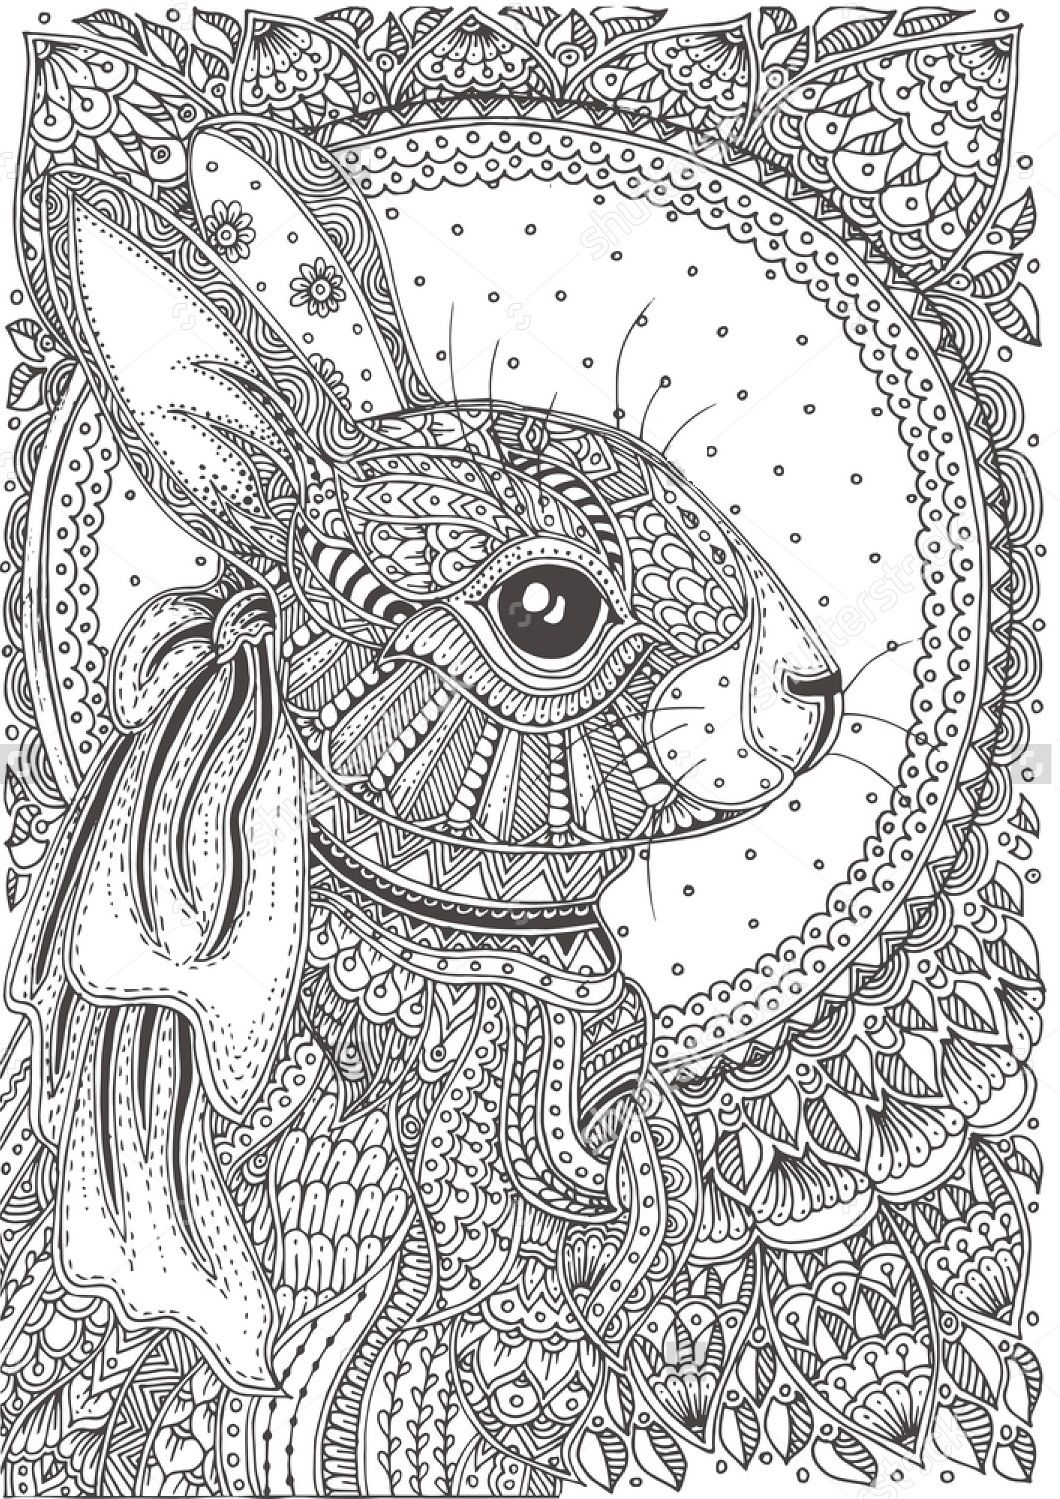 Easter Image By Sharon Bunny Coloring Pages Pattern Coloring